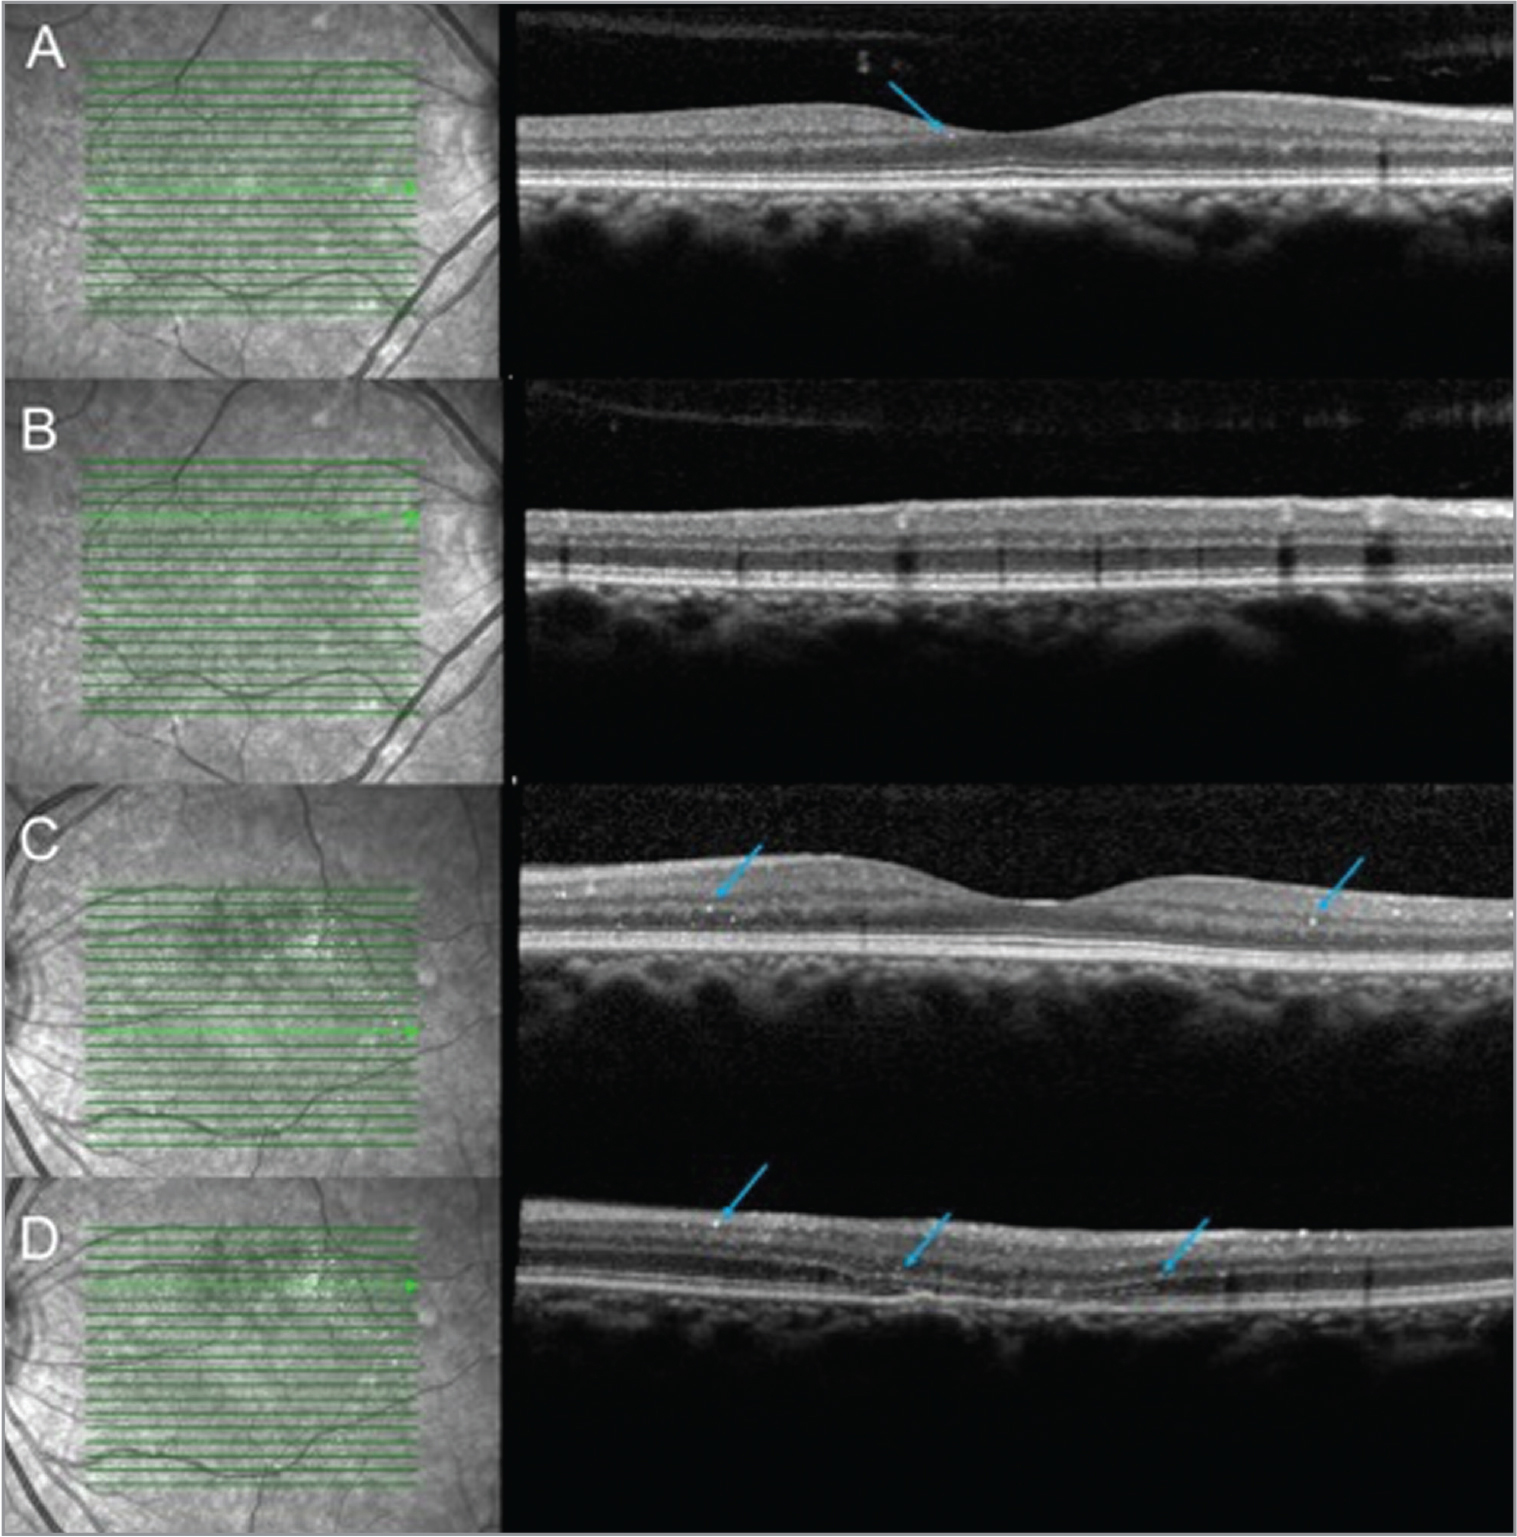 Optical coherence tomography at the time of presentation. The right eye (A, B) and left eye (C, D) at different areas of the macula demonstrated pinpoint hyperreflective material throughout the various layers of the retina representing the canthaxanthin crystals (blue arrows). In addition, (D) also had outer retinal subsidence and atrophy of the left superior macula.